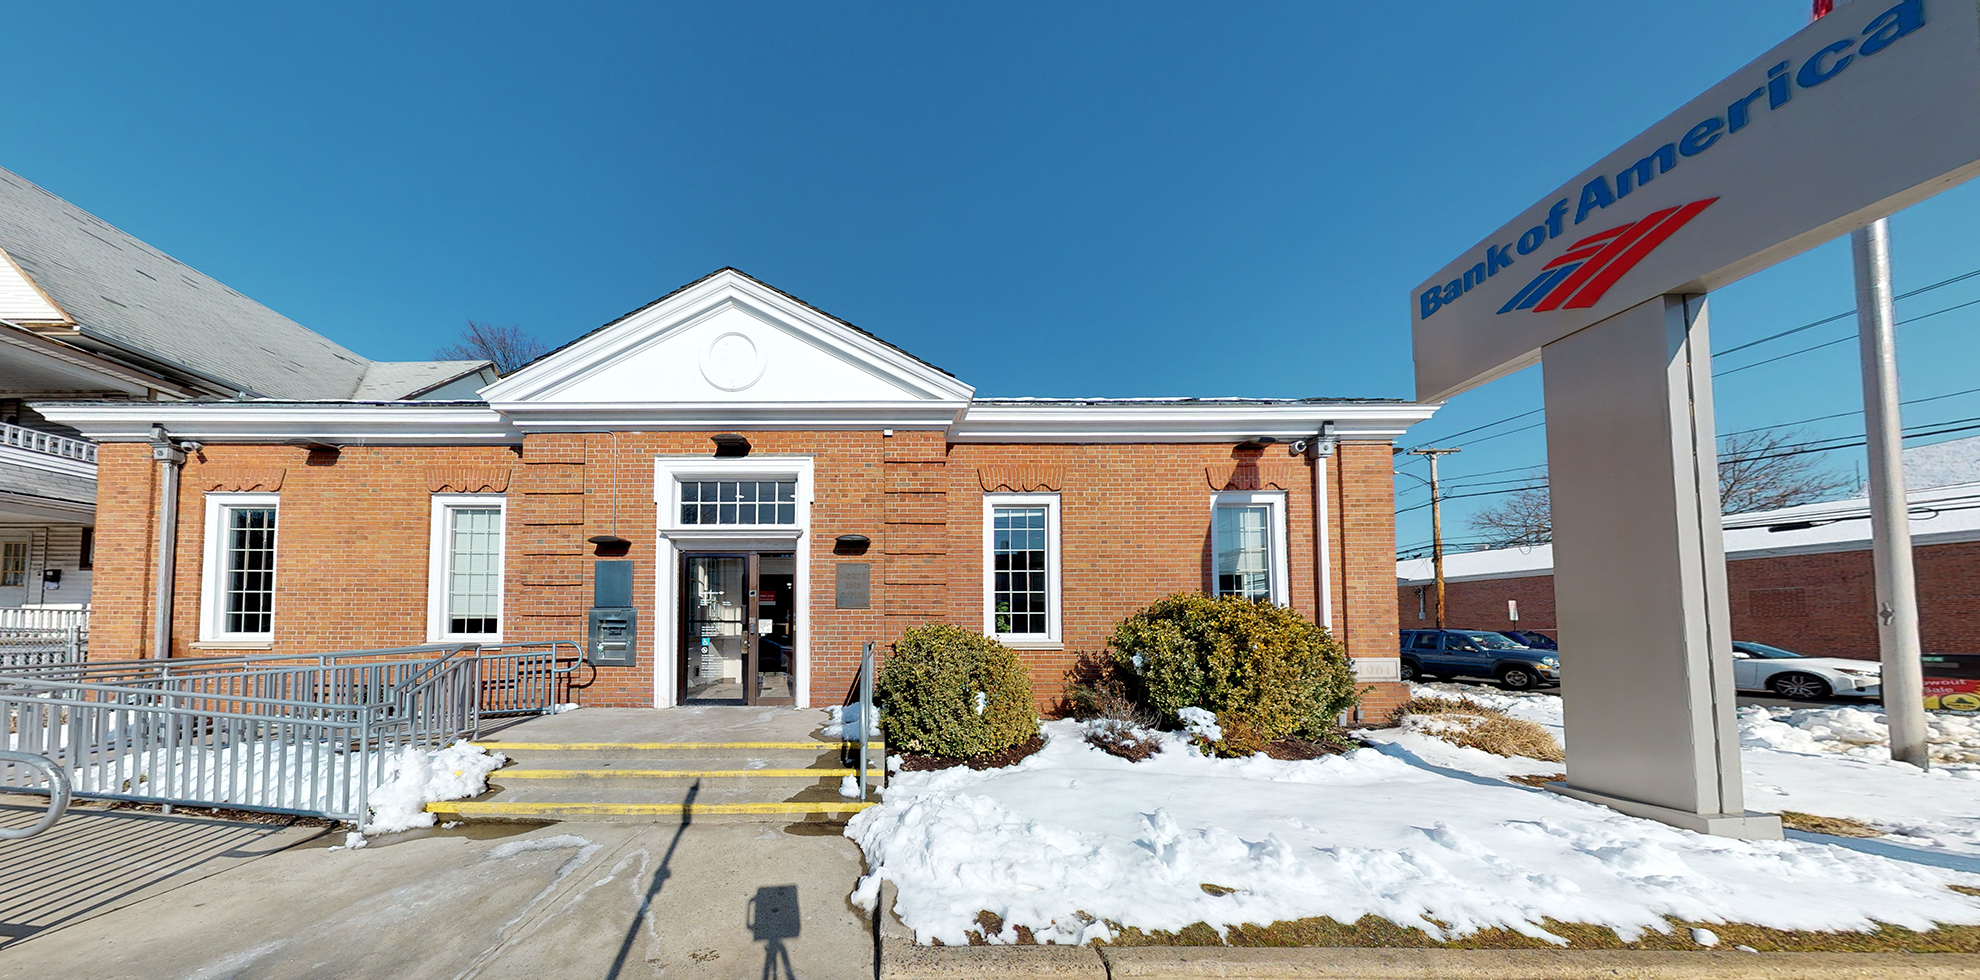 Bank of America financial center with drive-thru ATM | 2500 Main St, Bridgeport, CT 06606